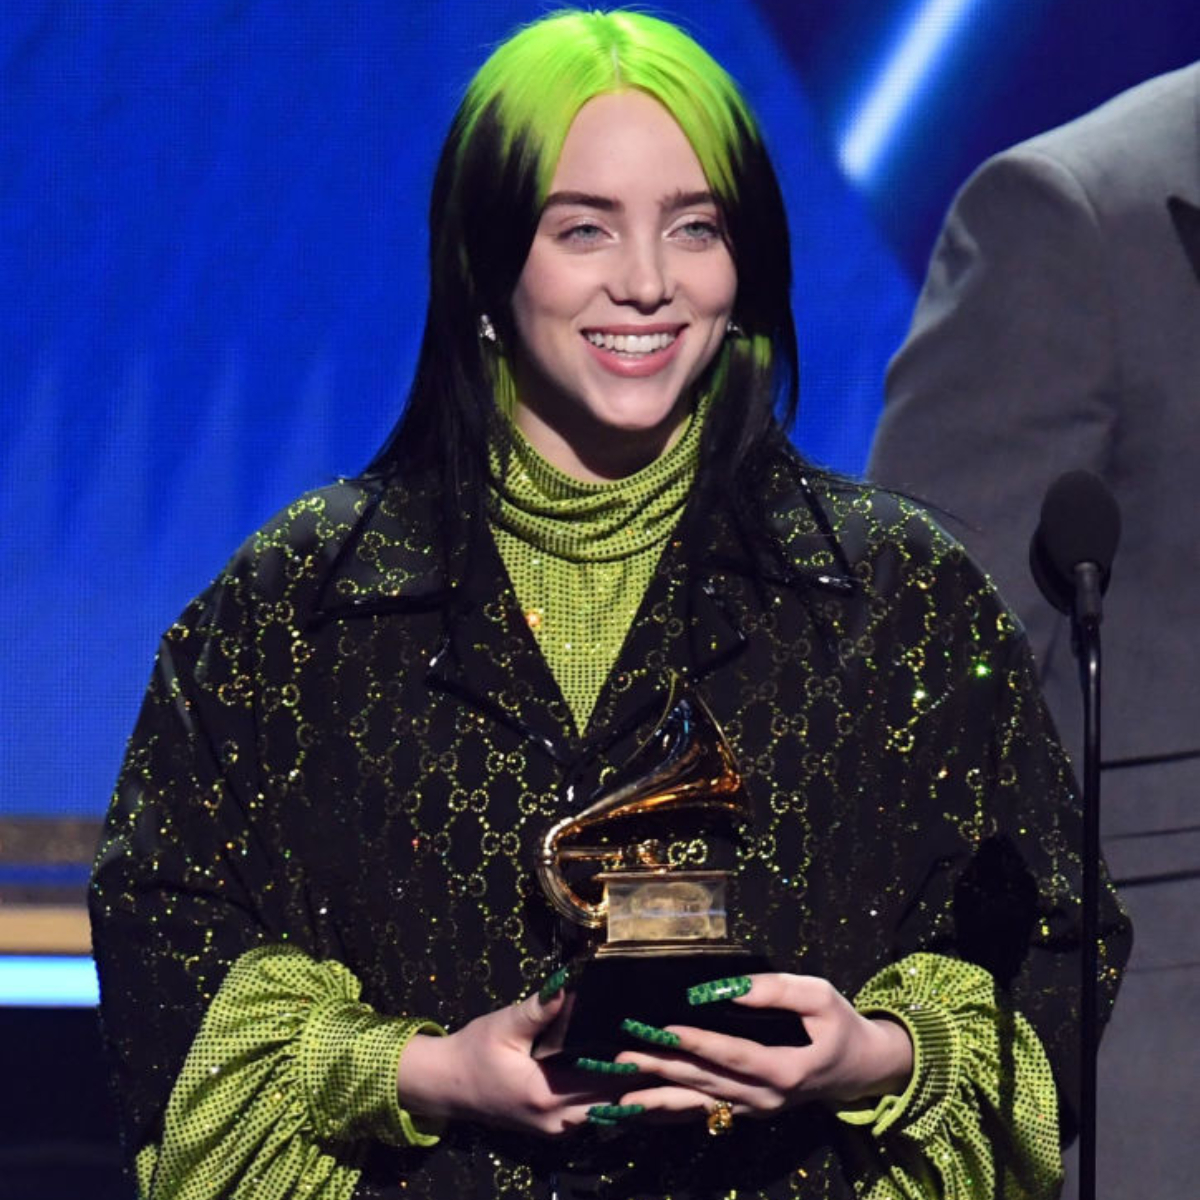 Grammys 2020 Complete Winners' List: Billie Eilish rules 62nd Grammy Awards with 5 wins, Lizzo bags 3 awards